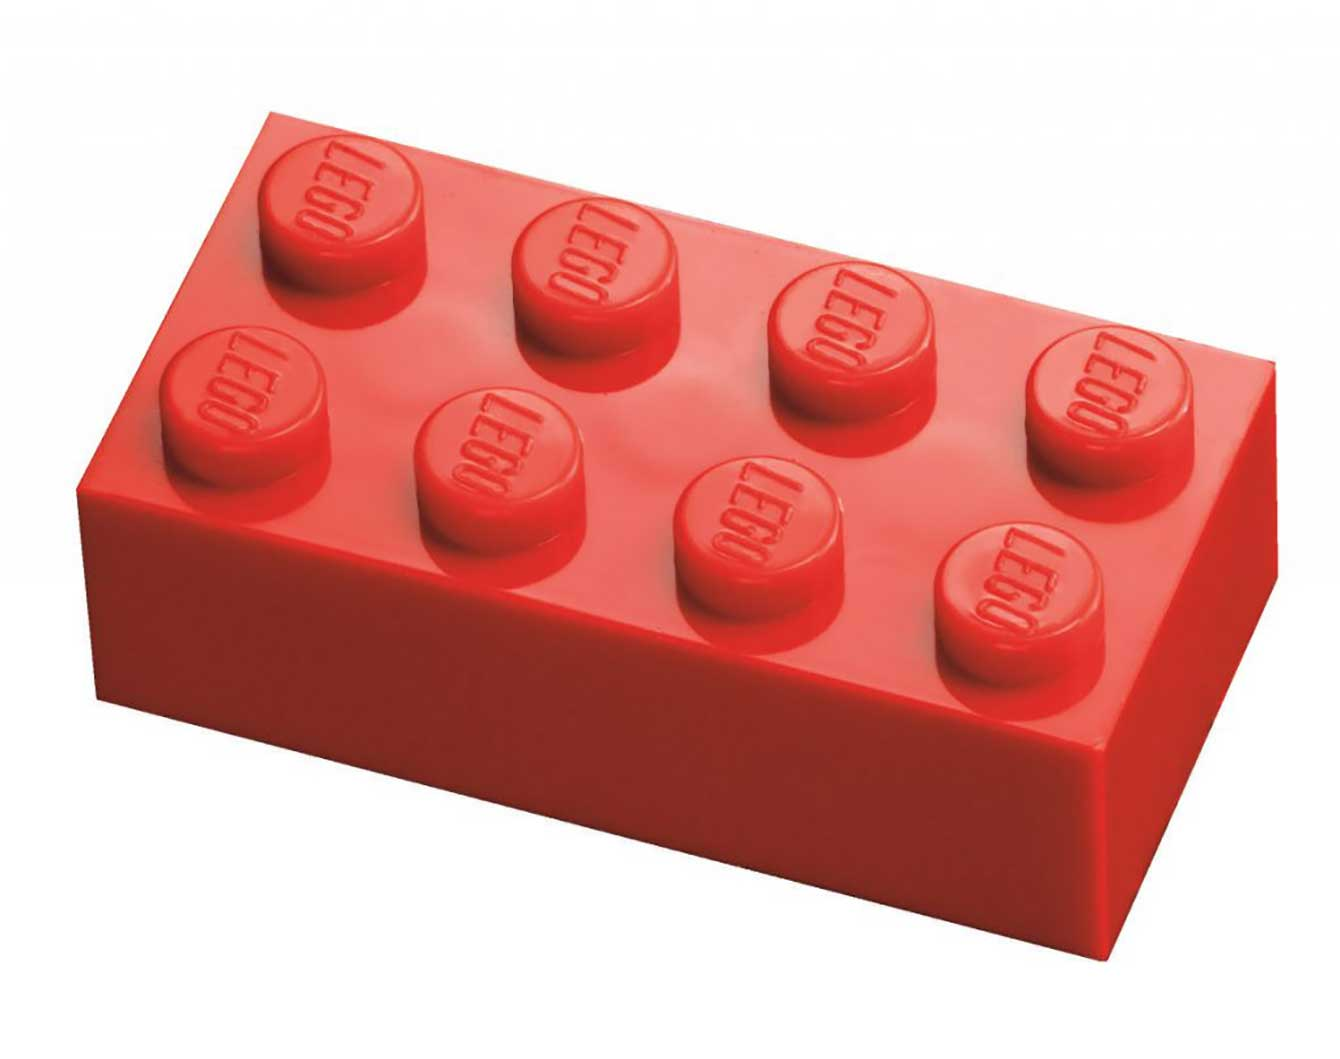 Every brick has at least one logo and all of them are colored in bright, vivid colors